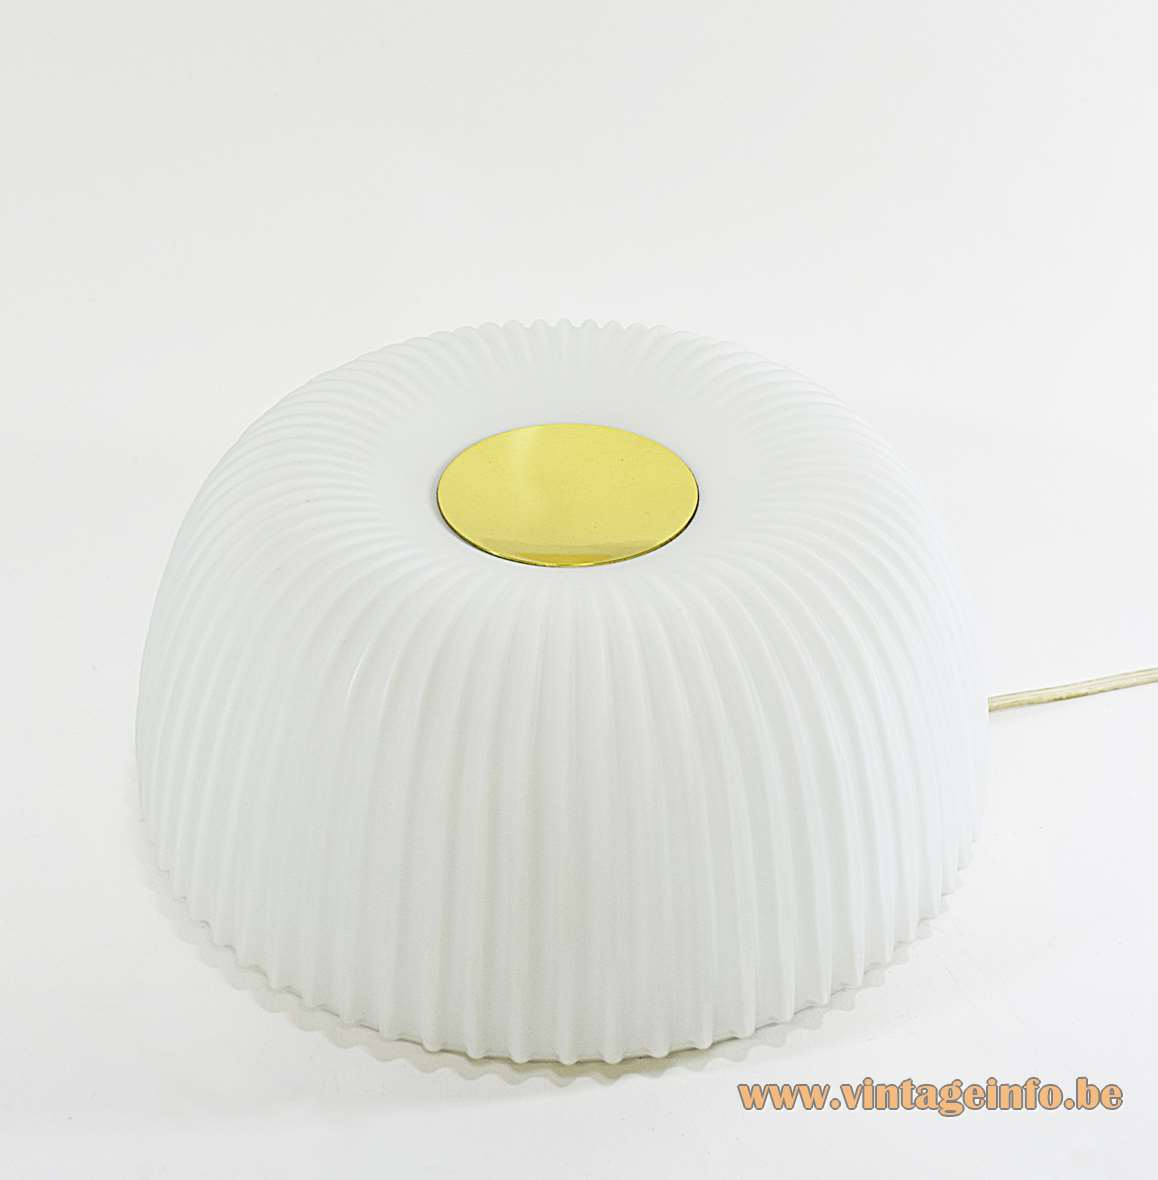 Glashütte Limburg flush mount 2773 round white opal crenate ribbed glass lampshade brass lid 1970s 1980s